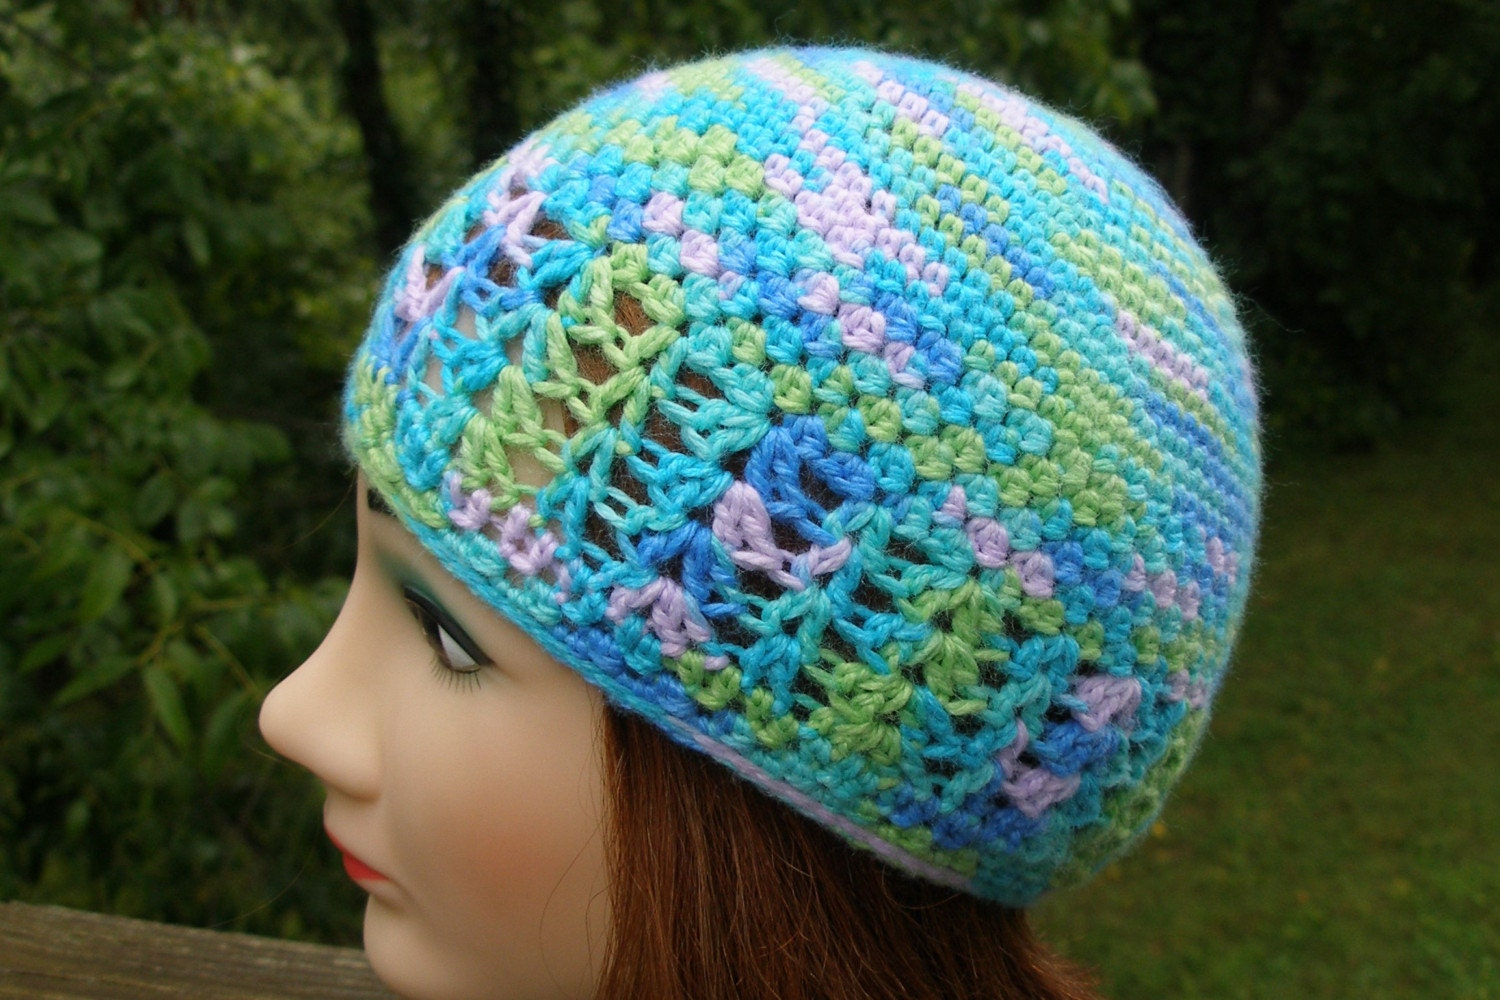 Crochet Spot » Blog Archive » How to Crochet a Beanie